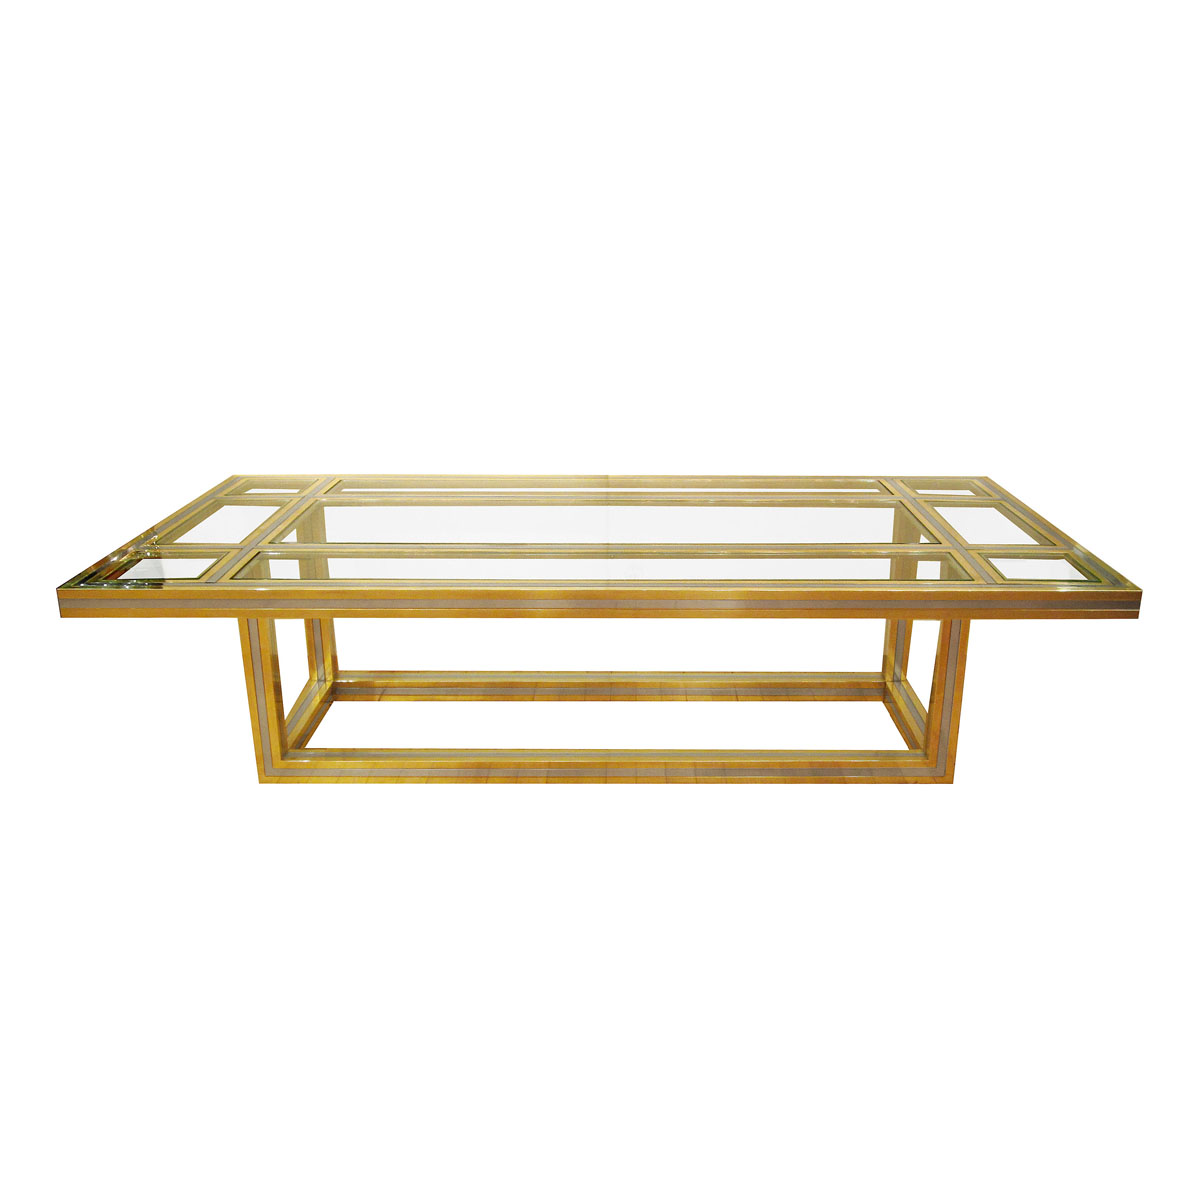 Brass And Stainless Steel Coffee Table With Glass Insets Tables John Salibello